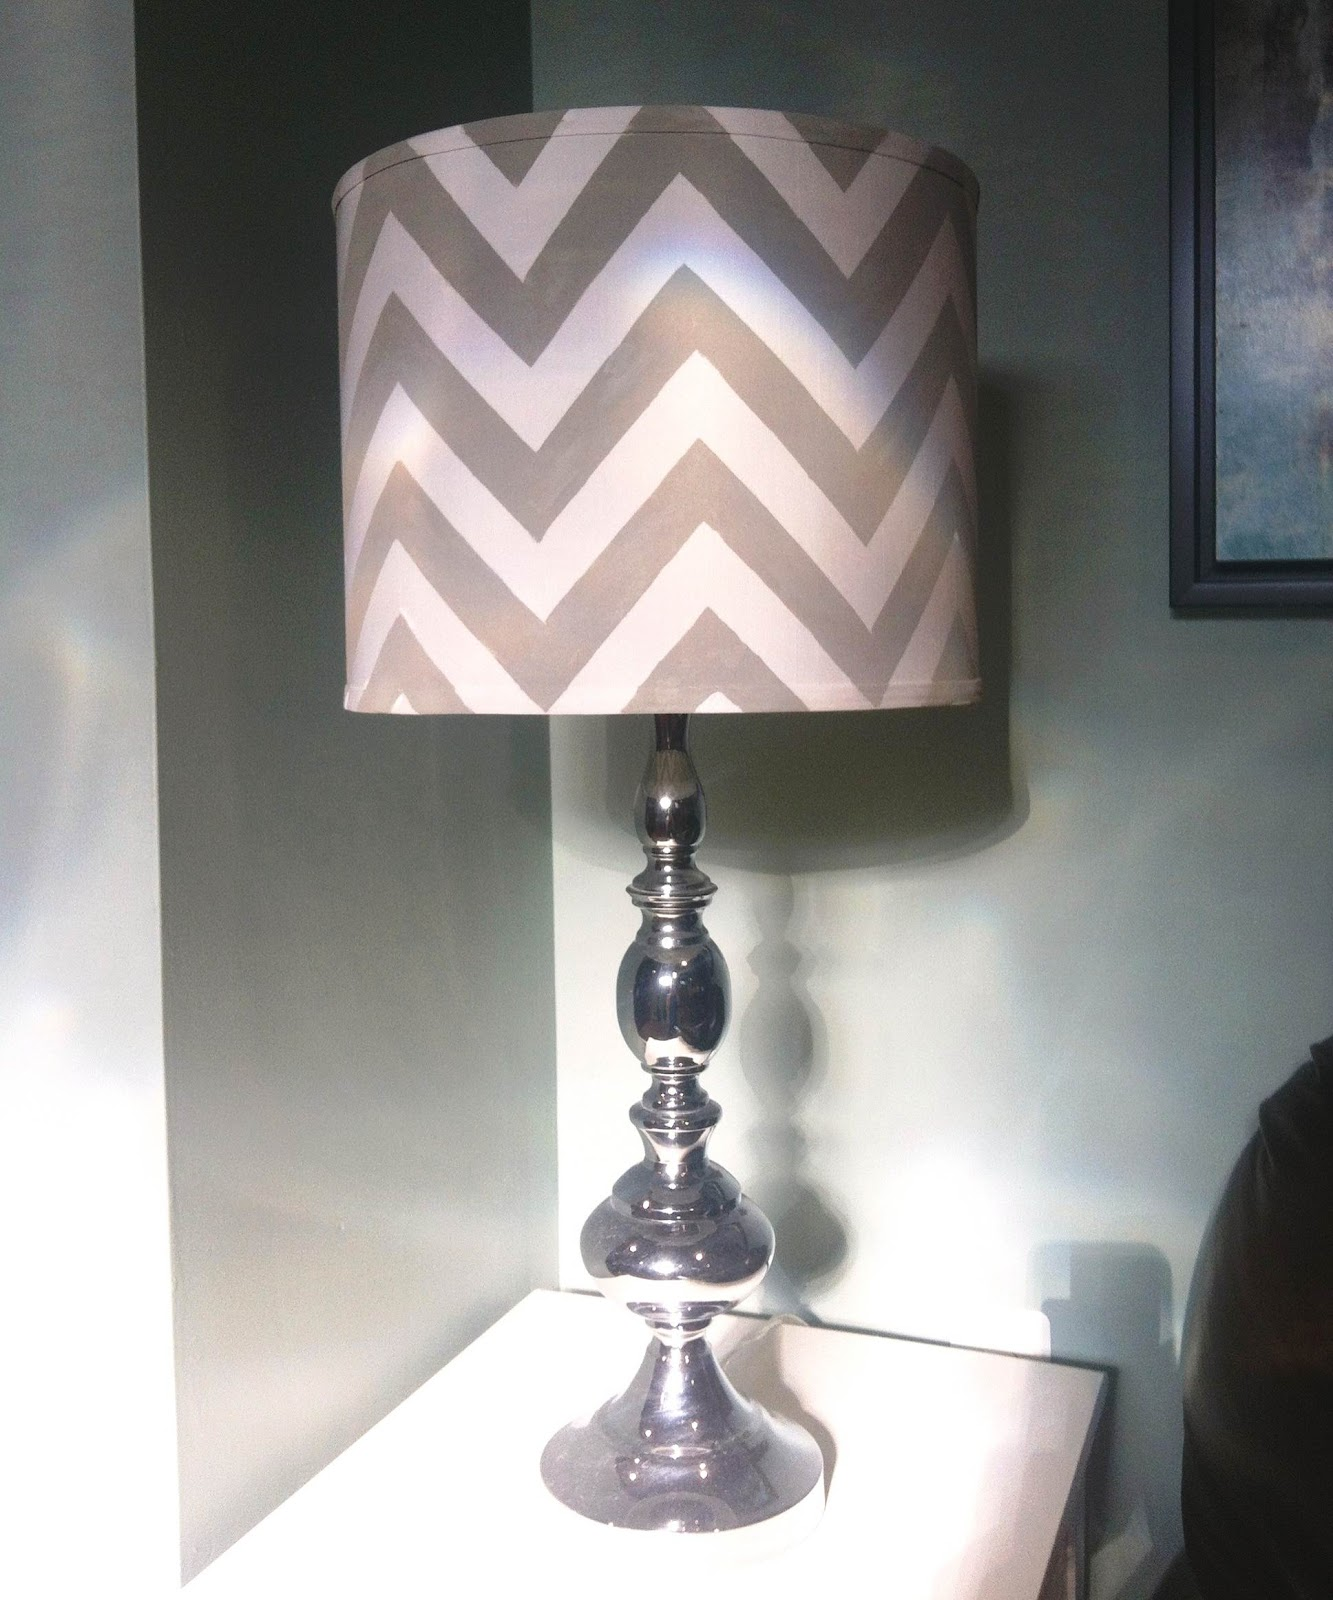 DIY: Chevron Lamp Shade | Six2Eleven